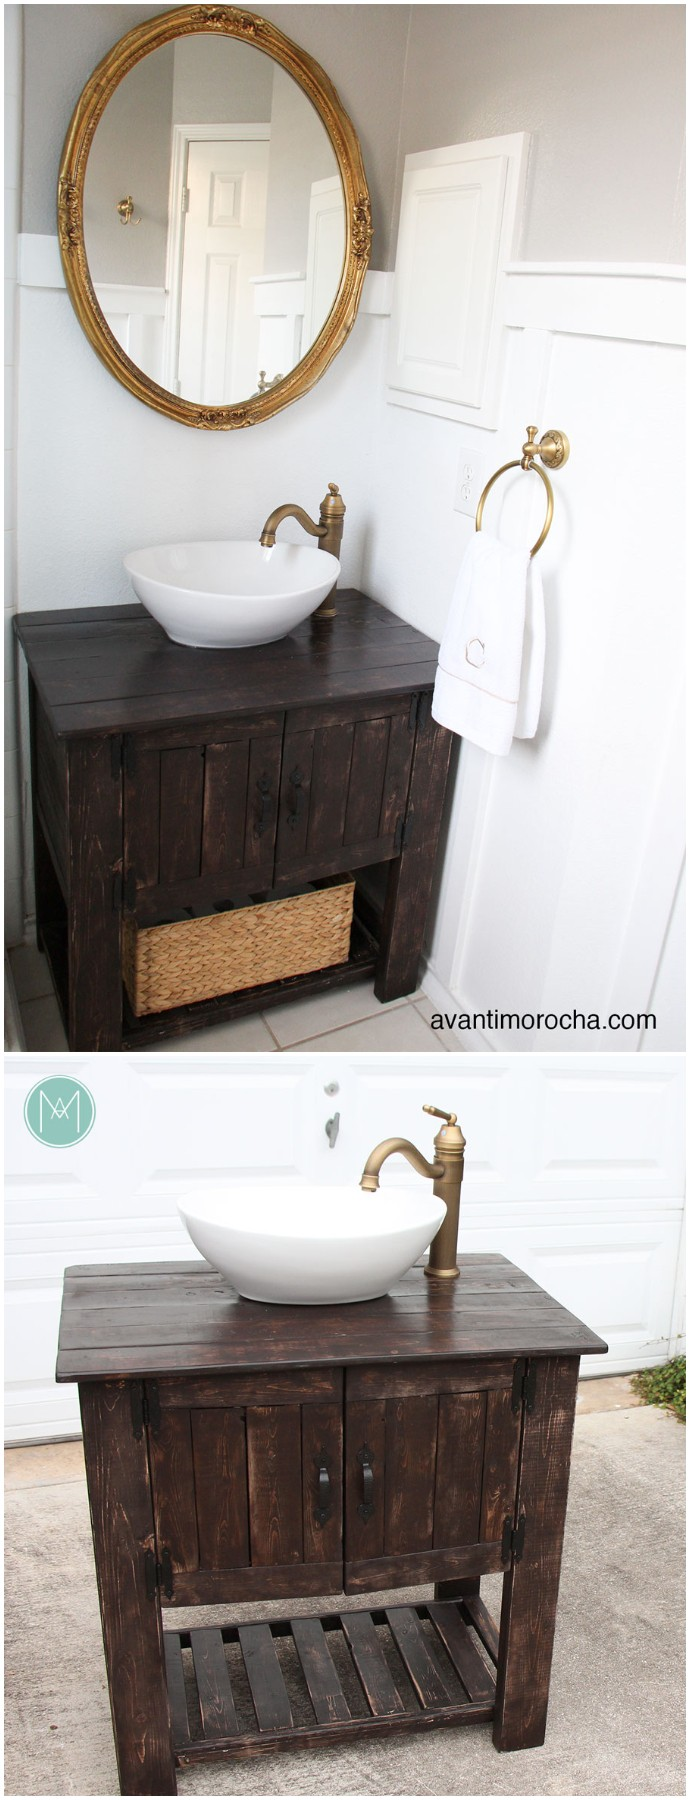 Diy Rustic Bathroom Vanity